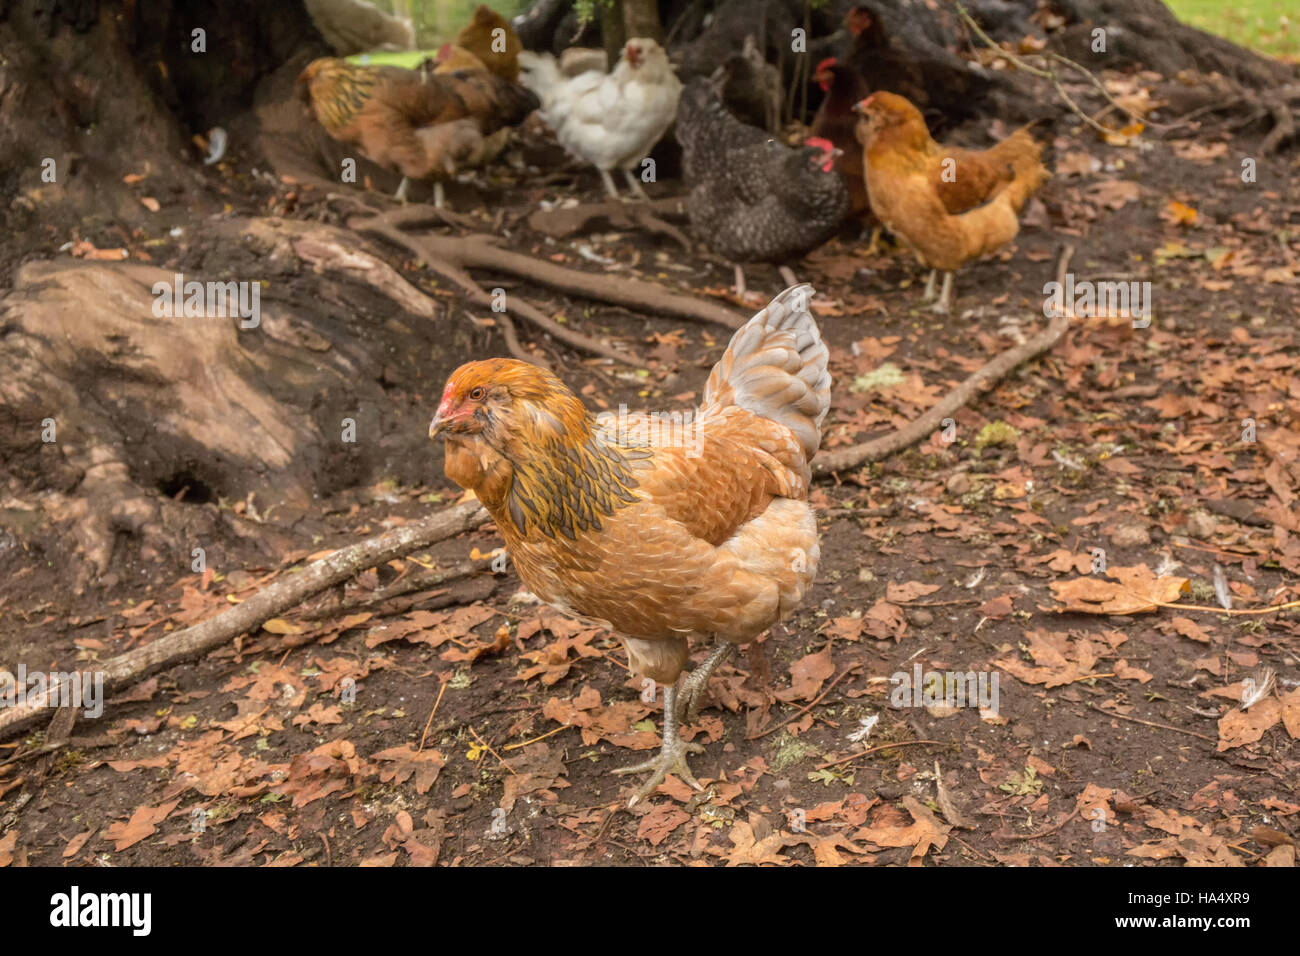 Free-ranging chickens underneath a large tree in Issaquah, Washington, USA. - Stock Image